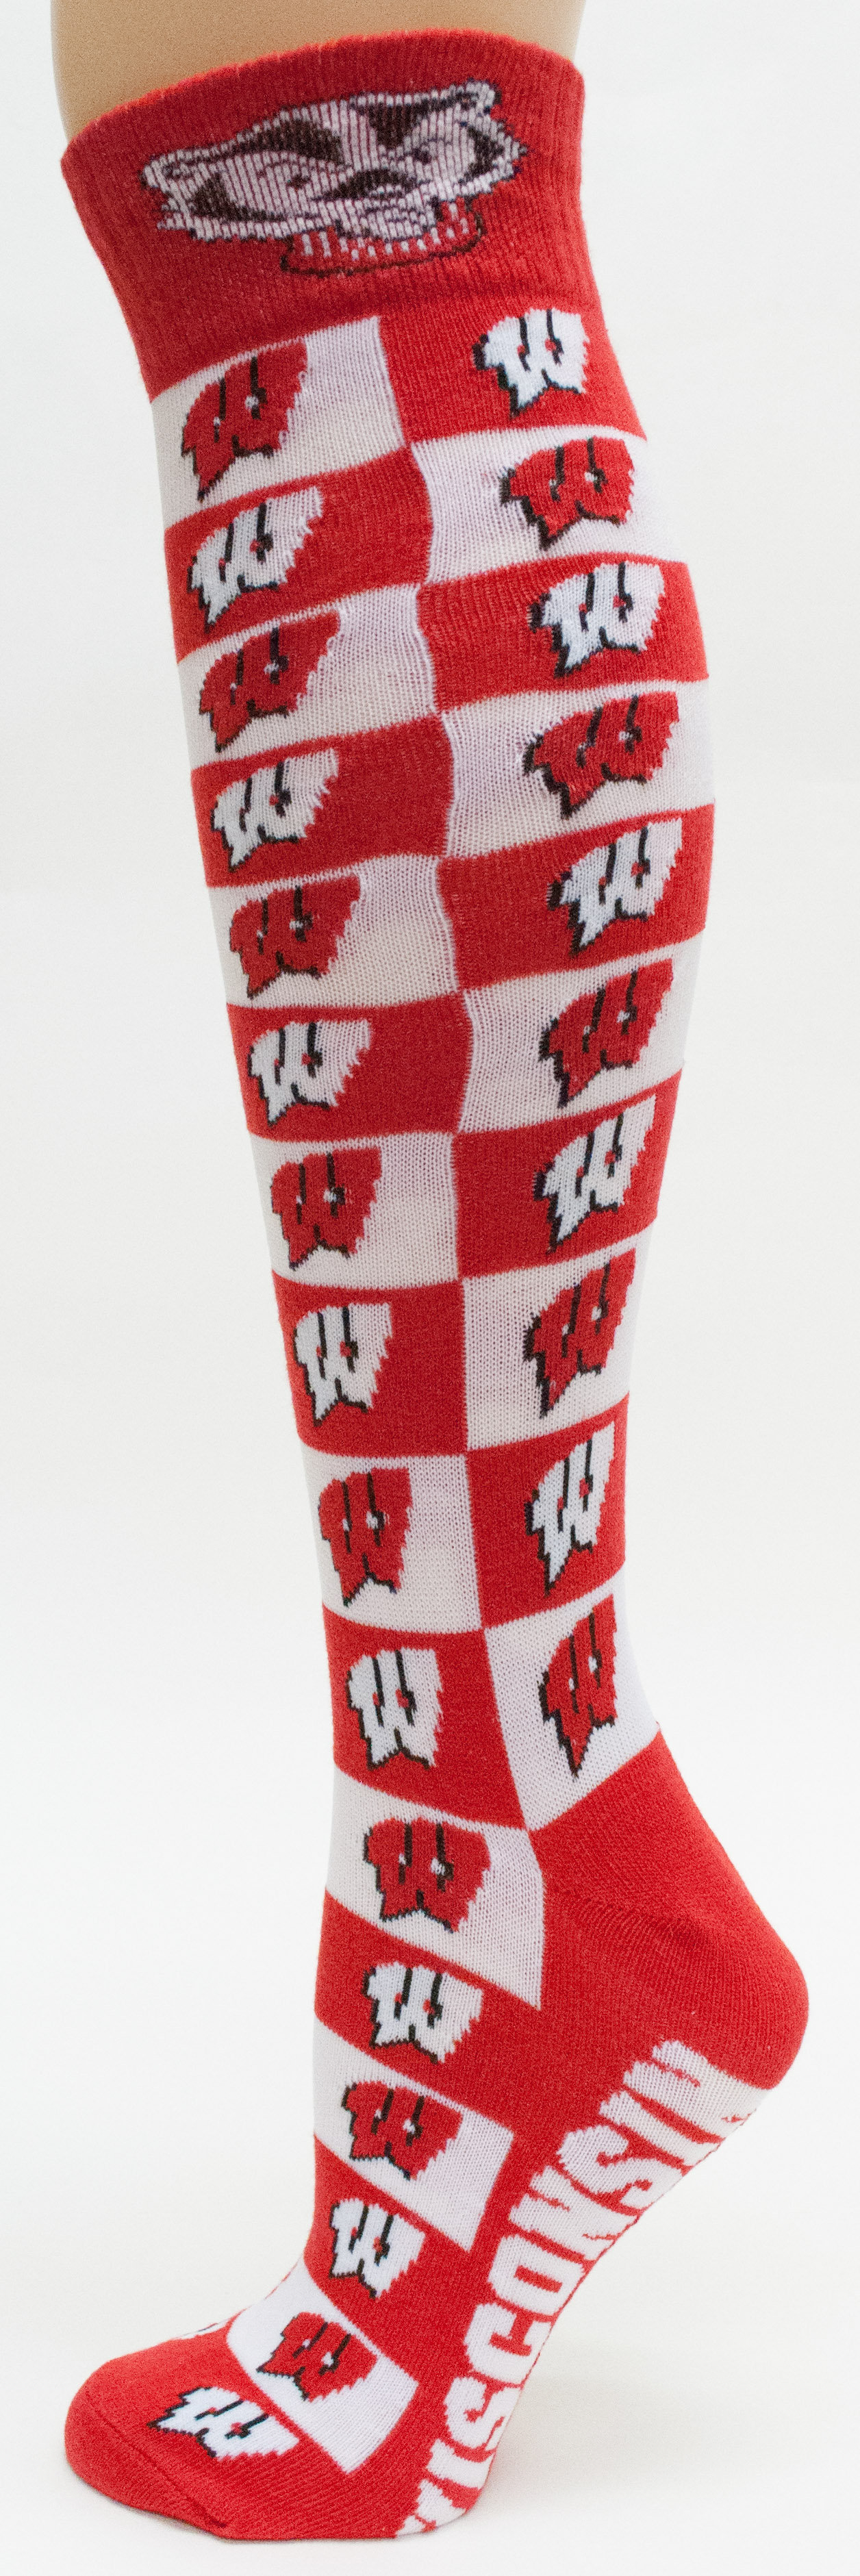 Wisconsin Badgers Checkerboard Dress Sock by Donegal Bay